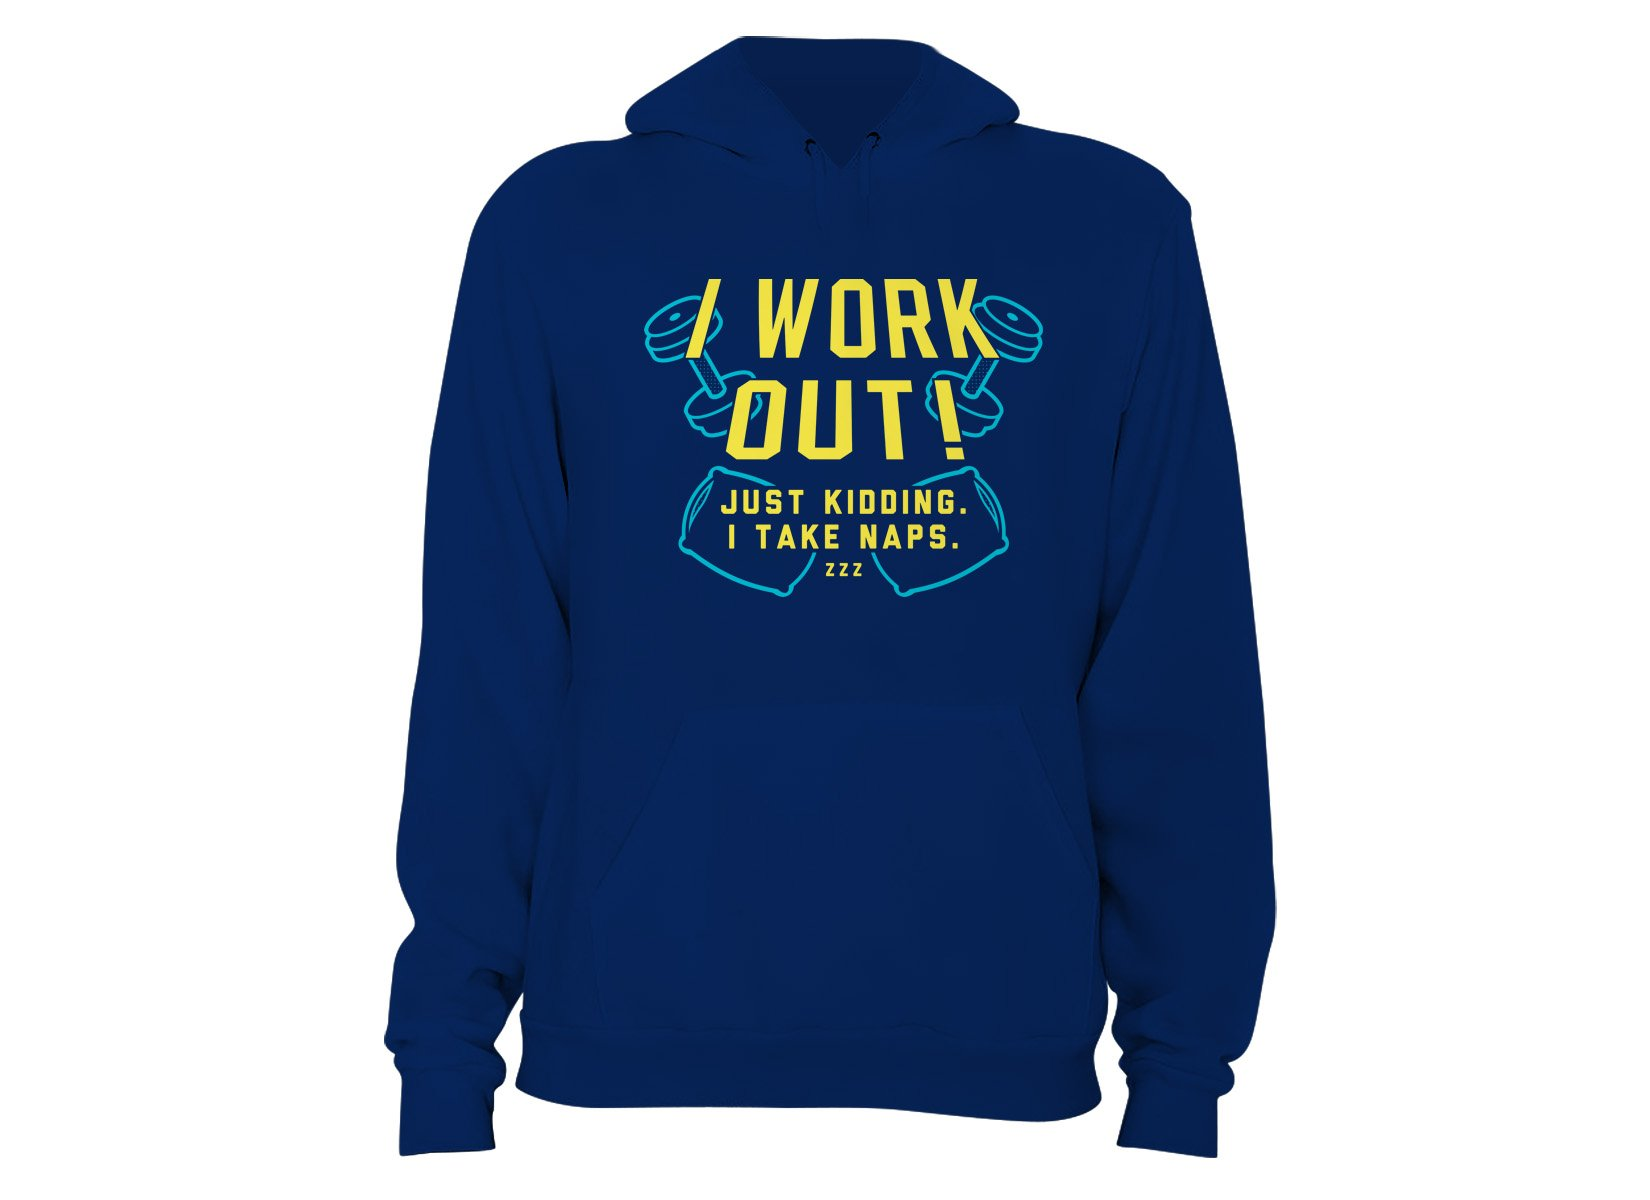 I Work Out! Just Kidding. I Take Naps. on Hoodie